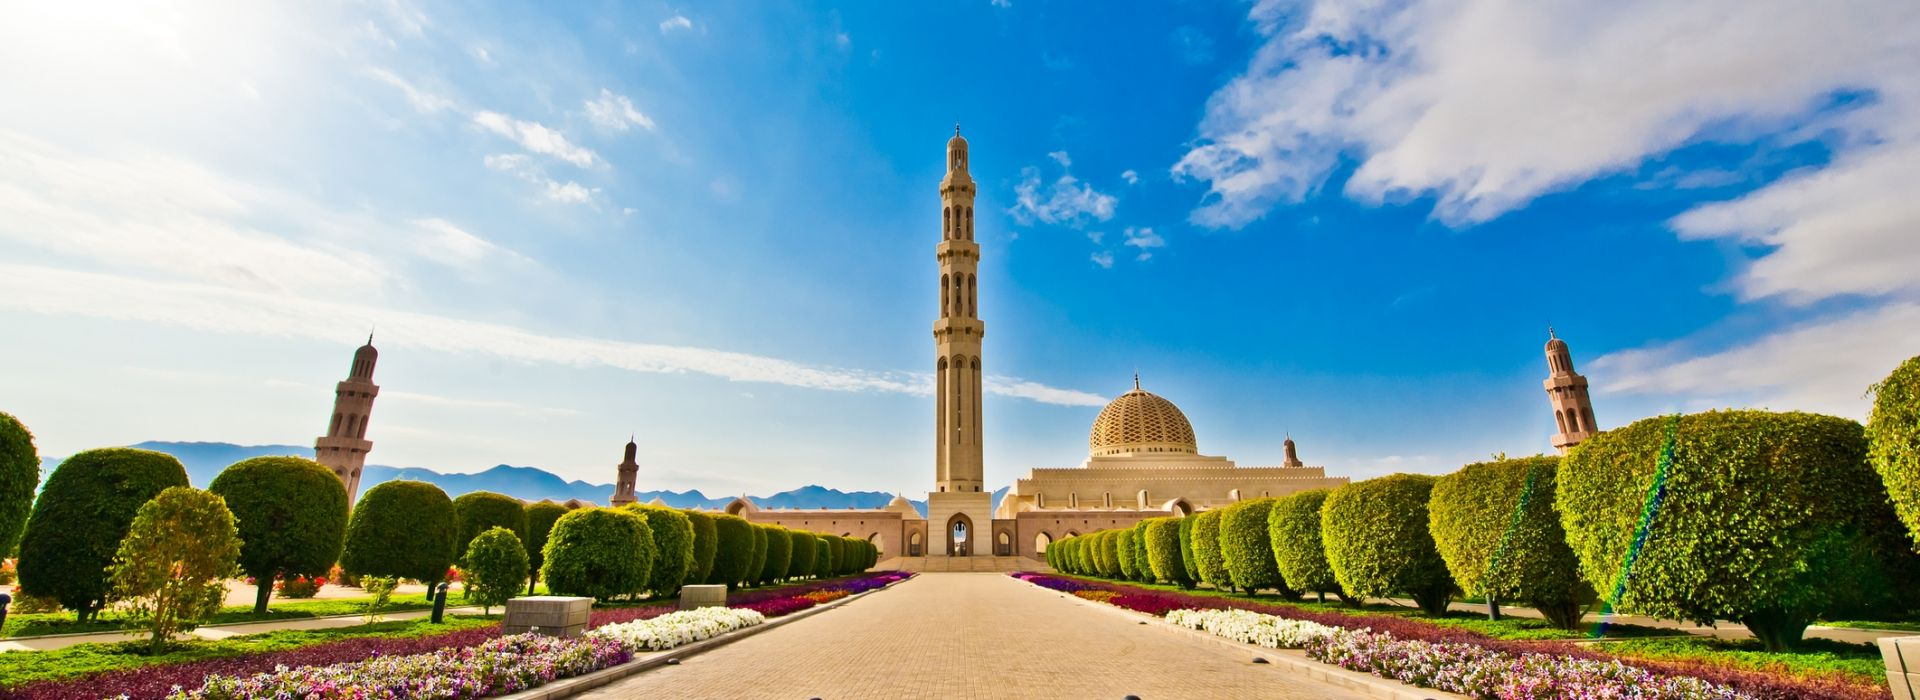 Travelling Oman - Tours and Holiday Packages in Oman